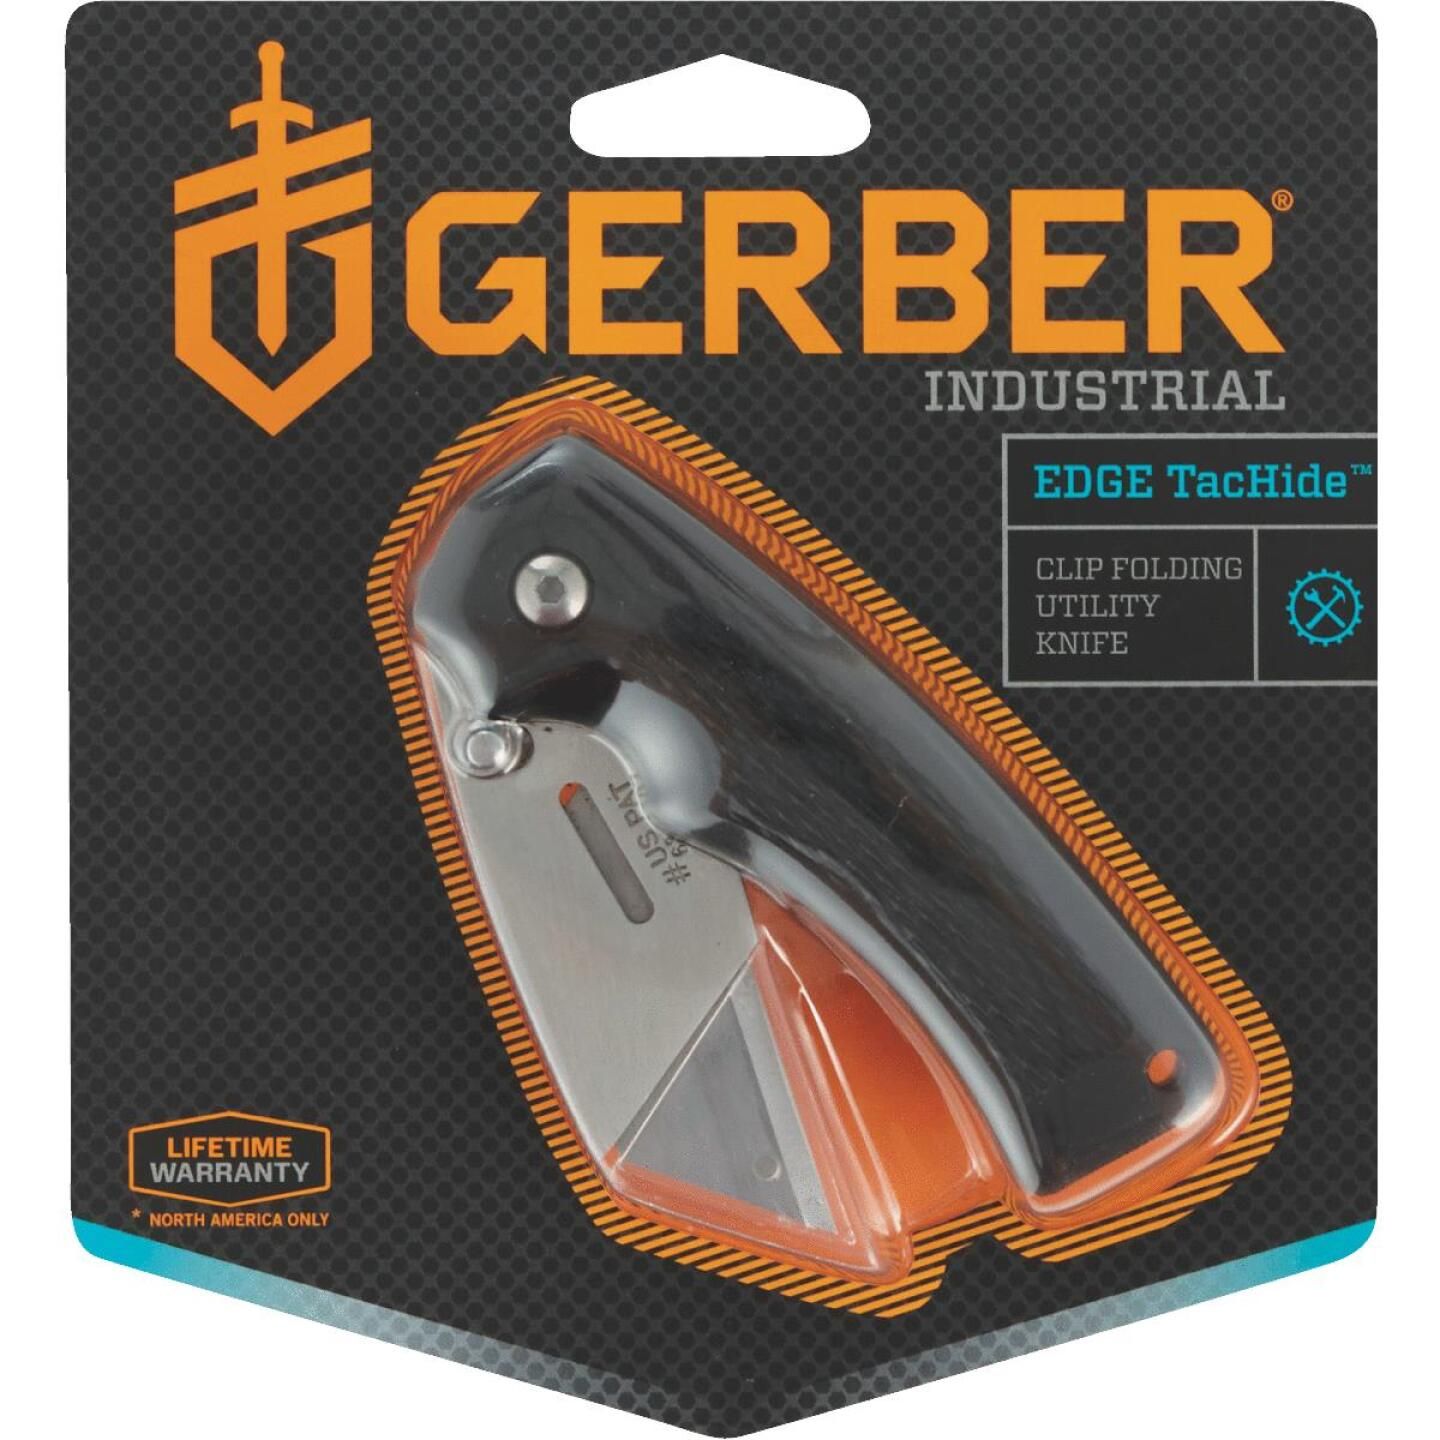 Gerber SK Edge 1 In. Folding Knife Image 2